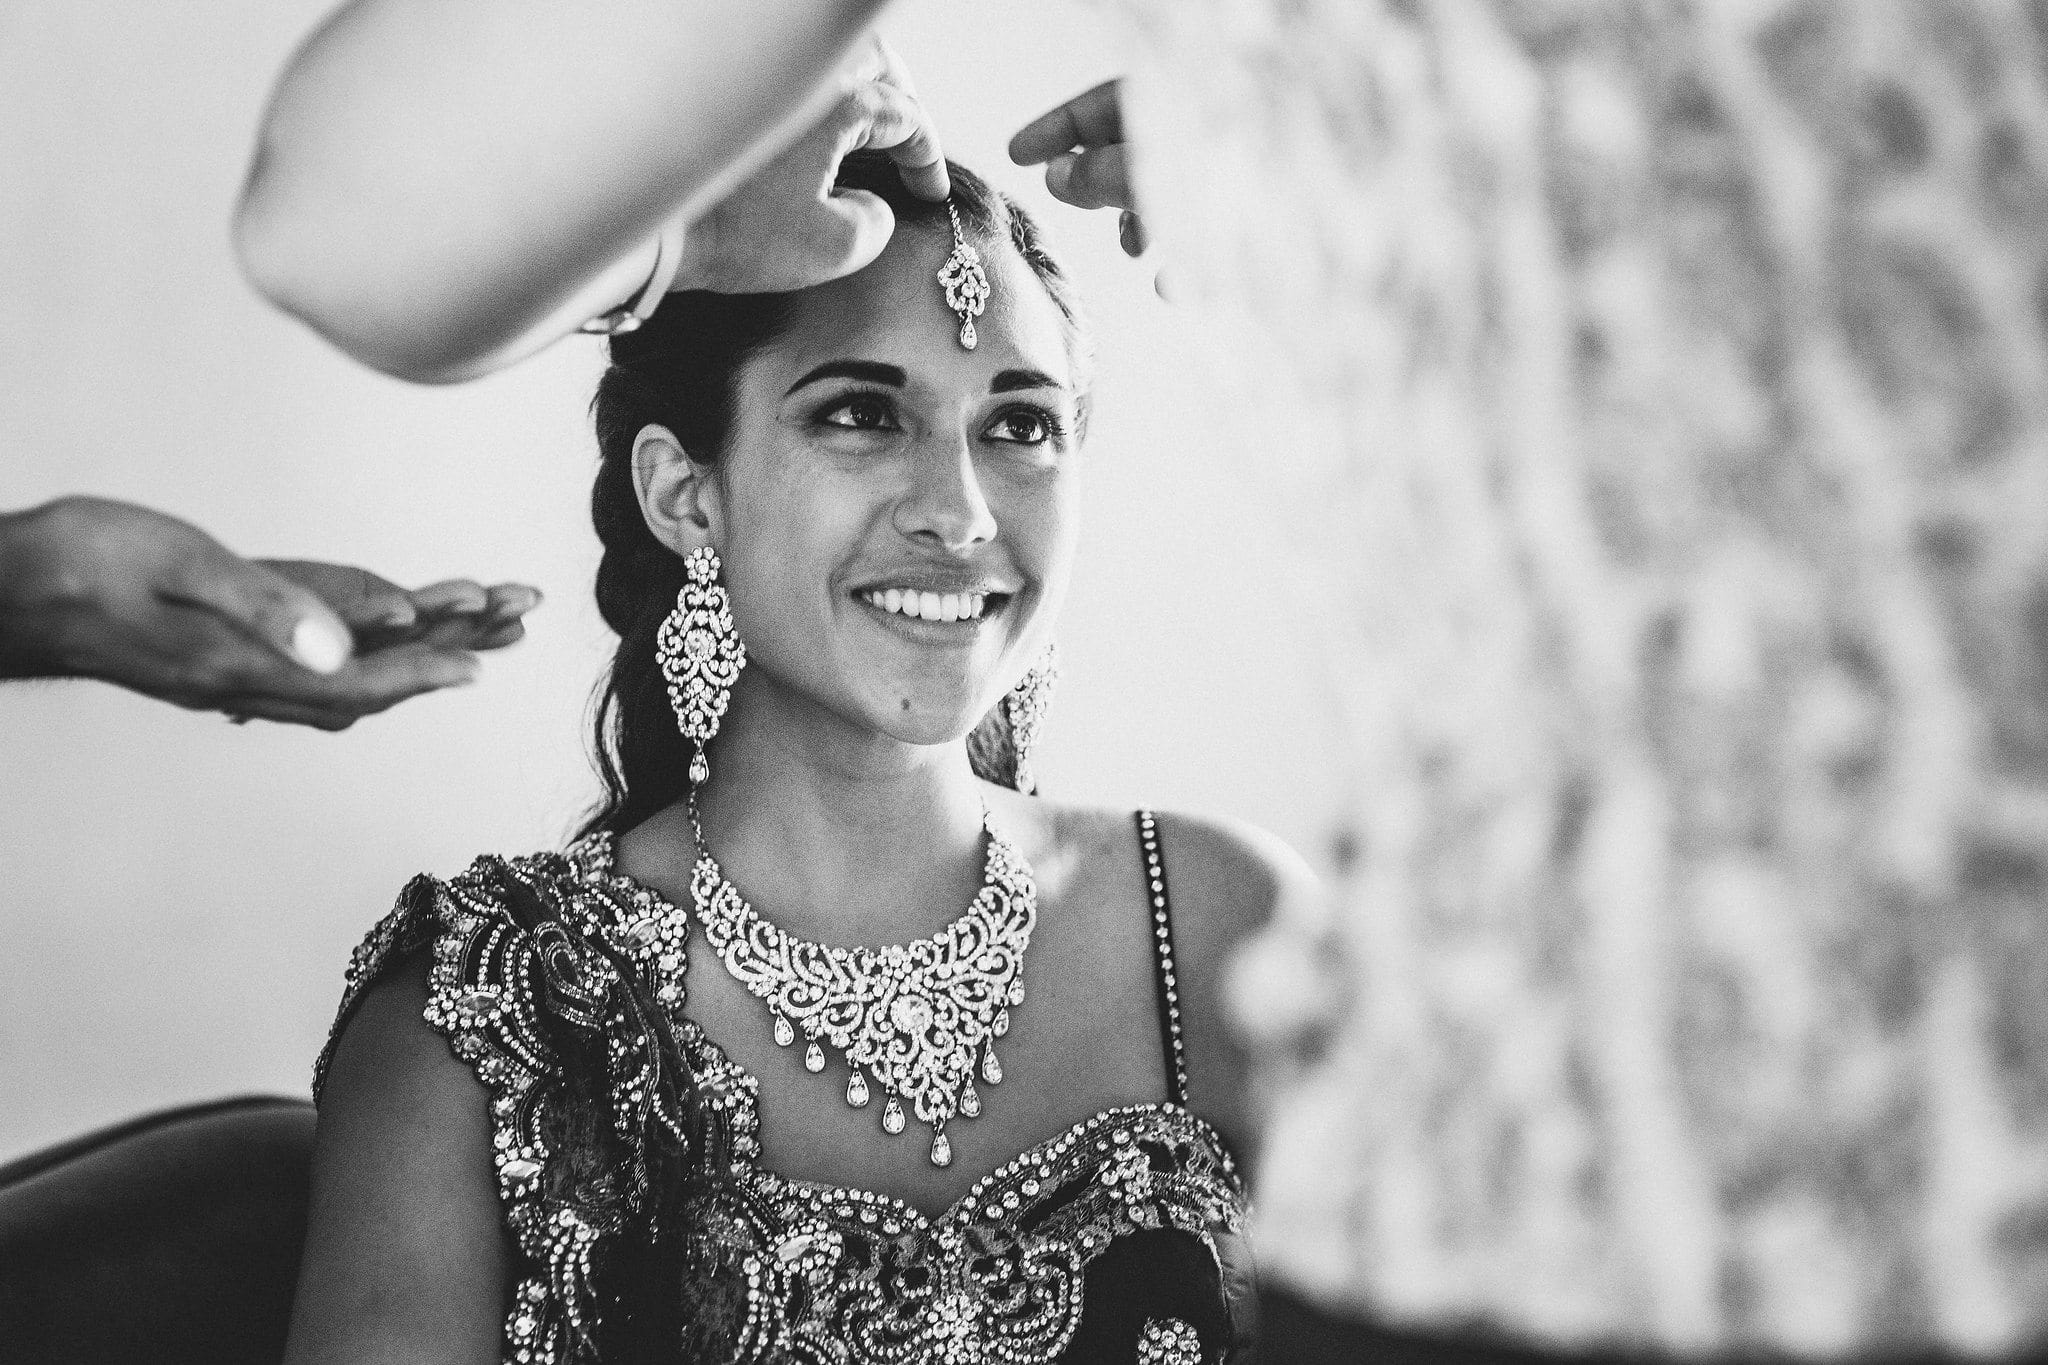 A black and white shot of Indian bride getting ready for her Marrakech destination wedding. She wears elaborate earrings and a necklace, and jewellery is being positioned on her forehead as she smiles.